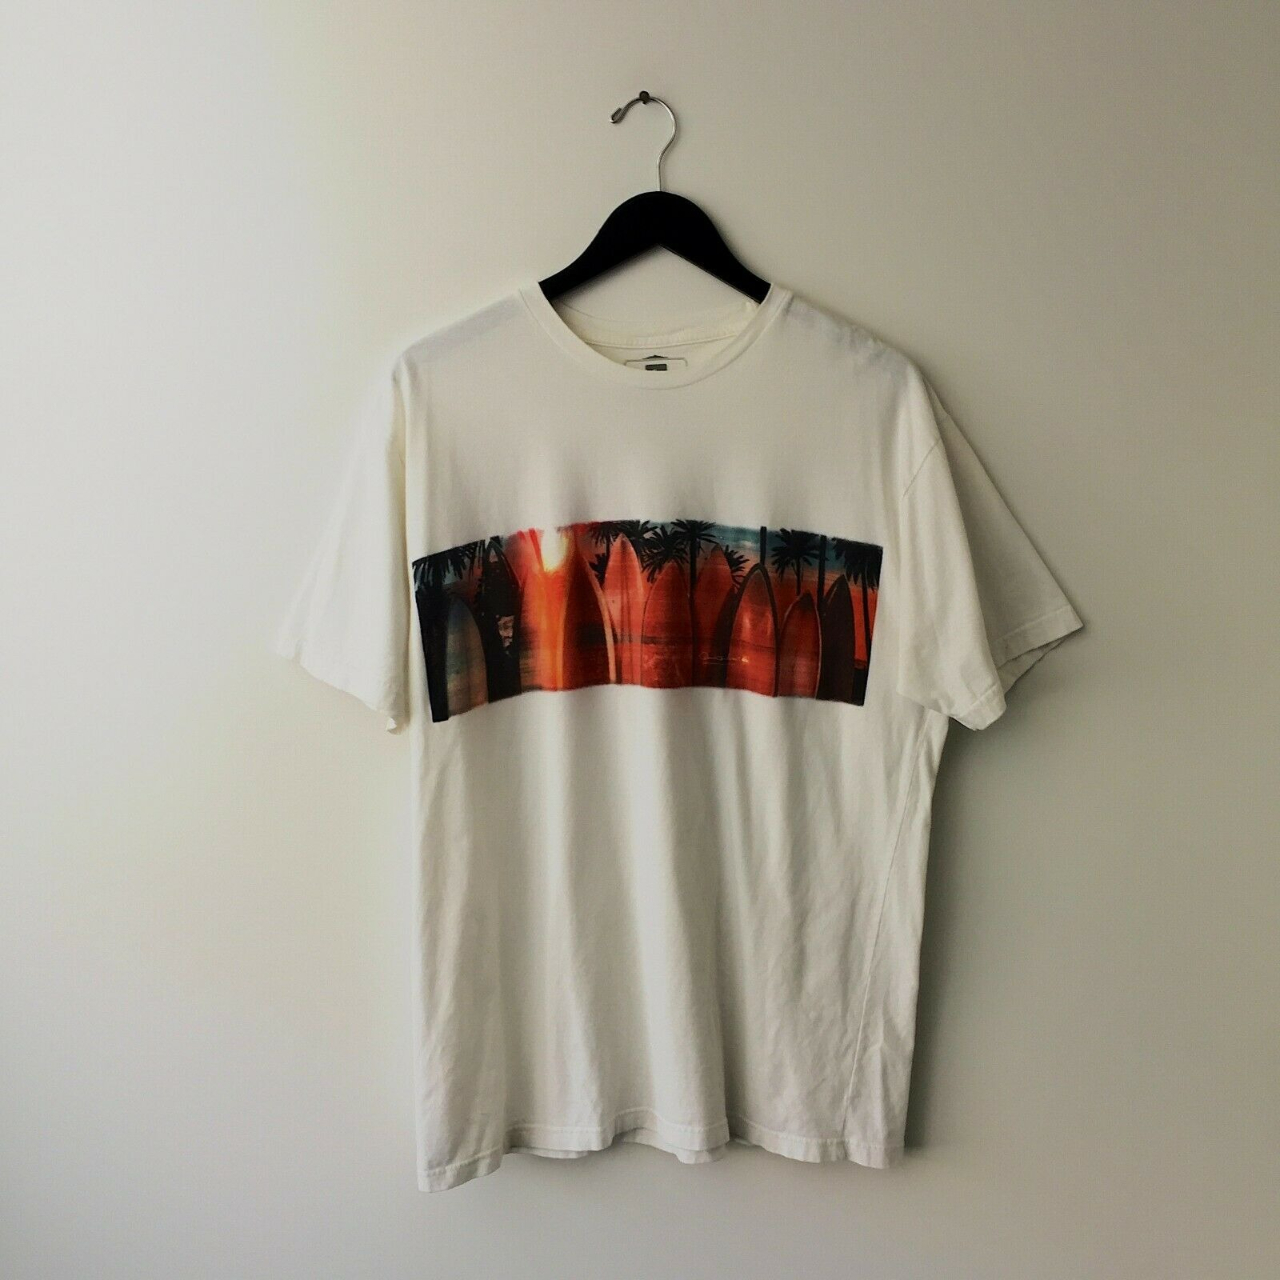 Product Image 1 - Quiksilver Waterman Collection Surf T